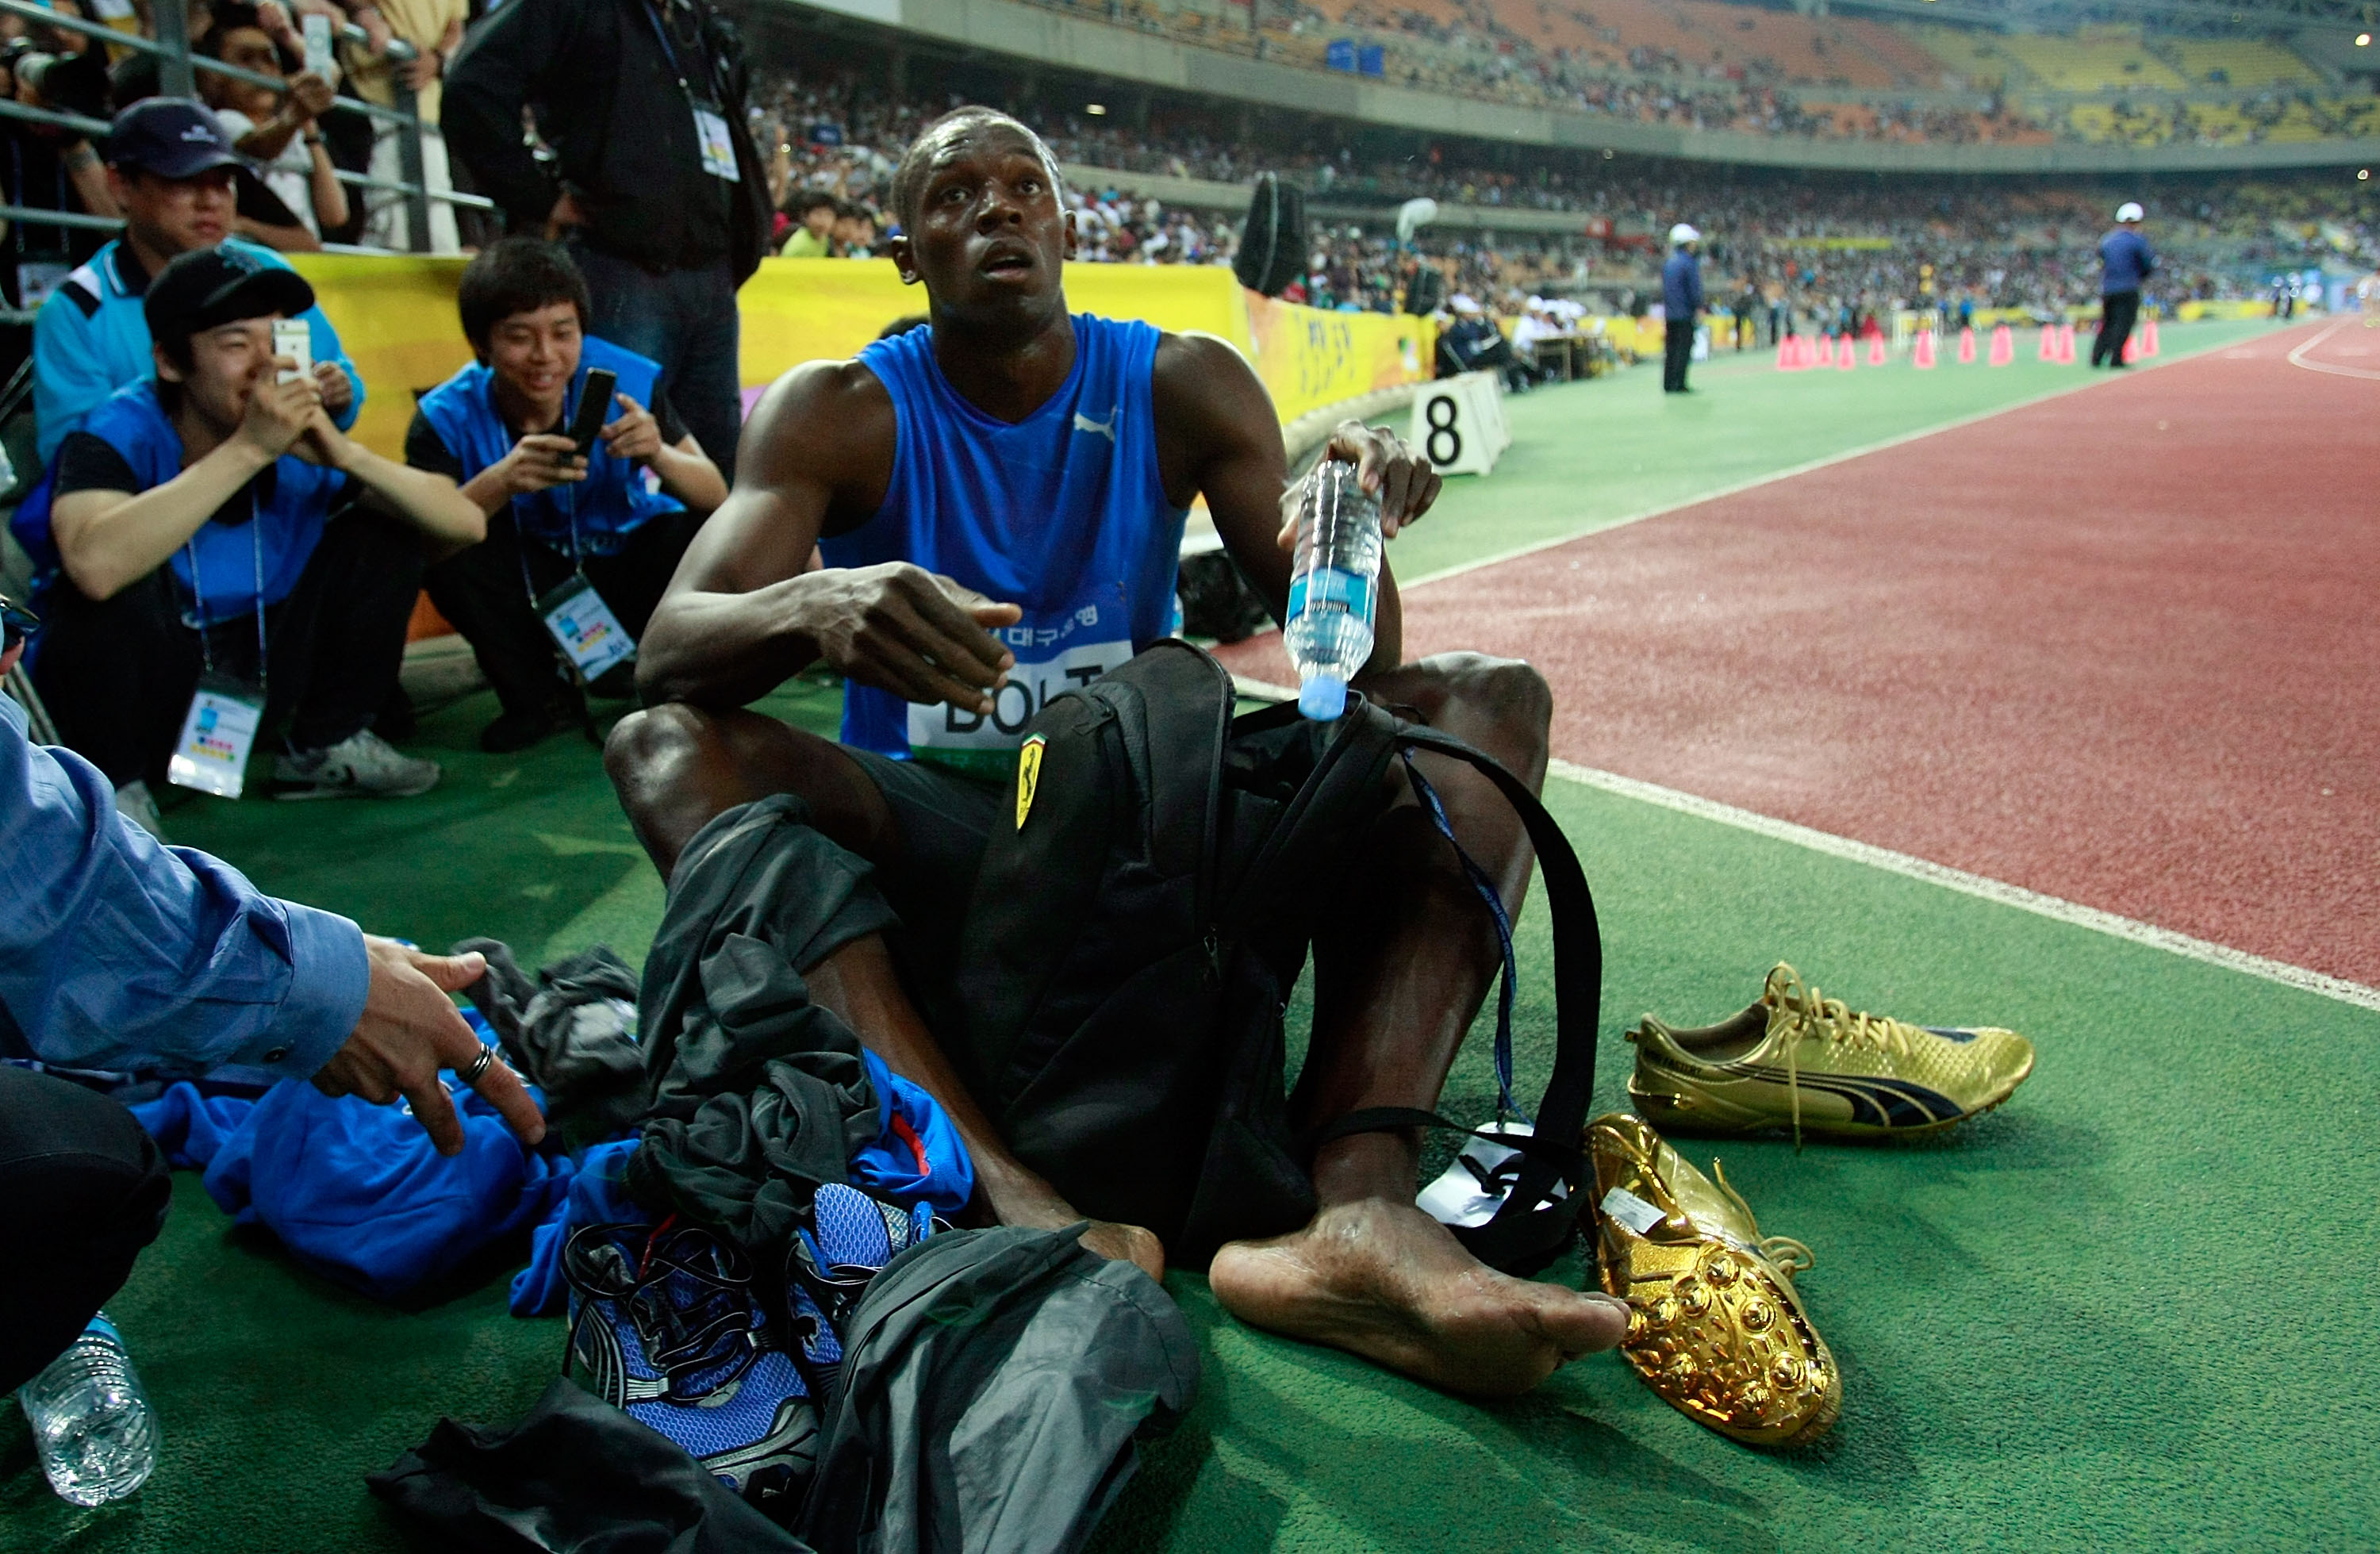 DAEGU, SOUTH KOREA - MAY 19:  Usain Bolt of Jamaica rests after winning the men's 100 metre race during the Colorful Daegu Pre-Championships Meeting 2010 at Daegu Stadium on May 19, 2010 in Daegu, South Korea. Bolt won the race at 9.86.  (Photo by Chung S